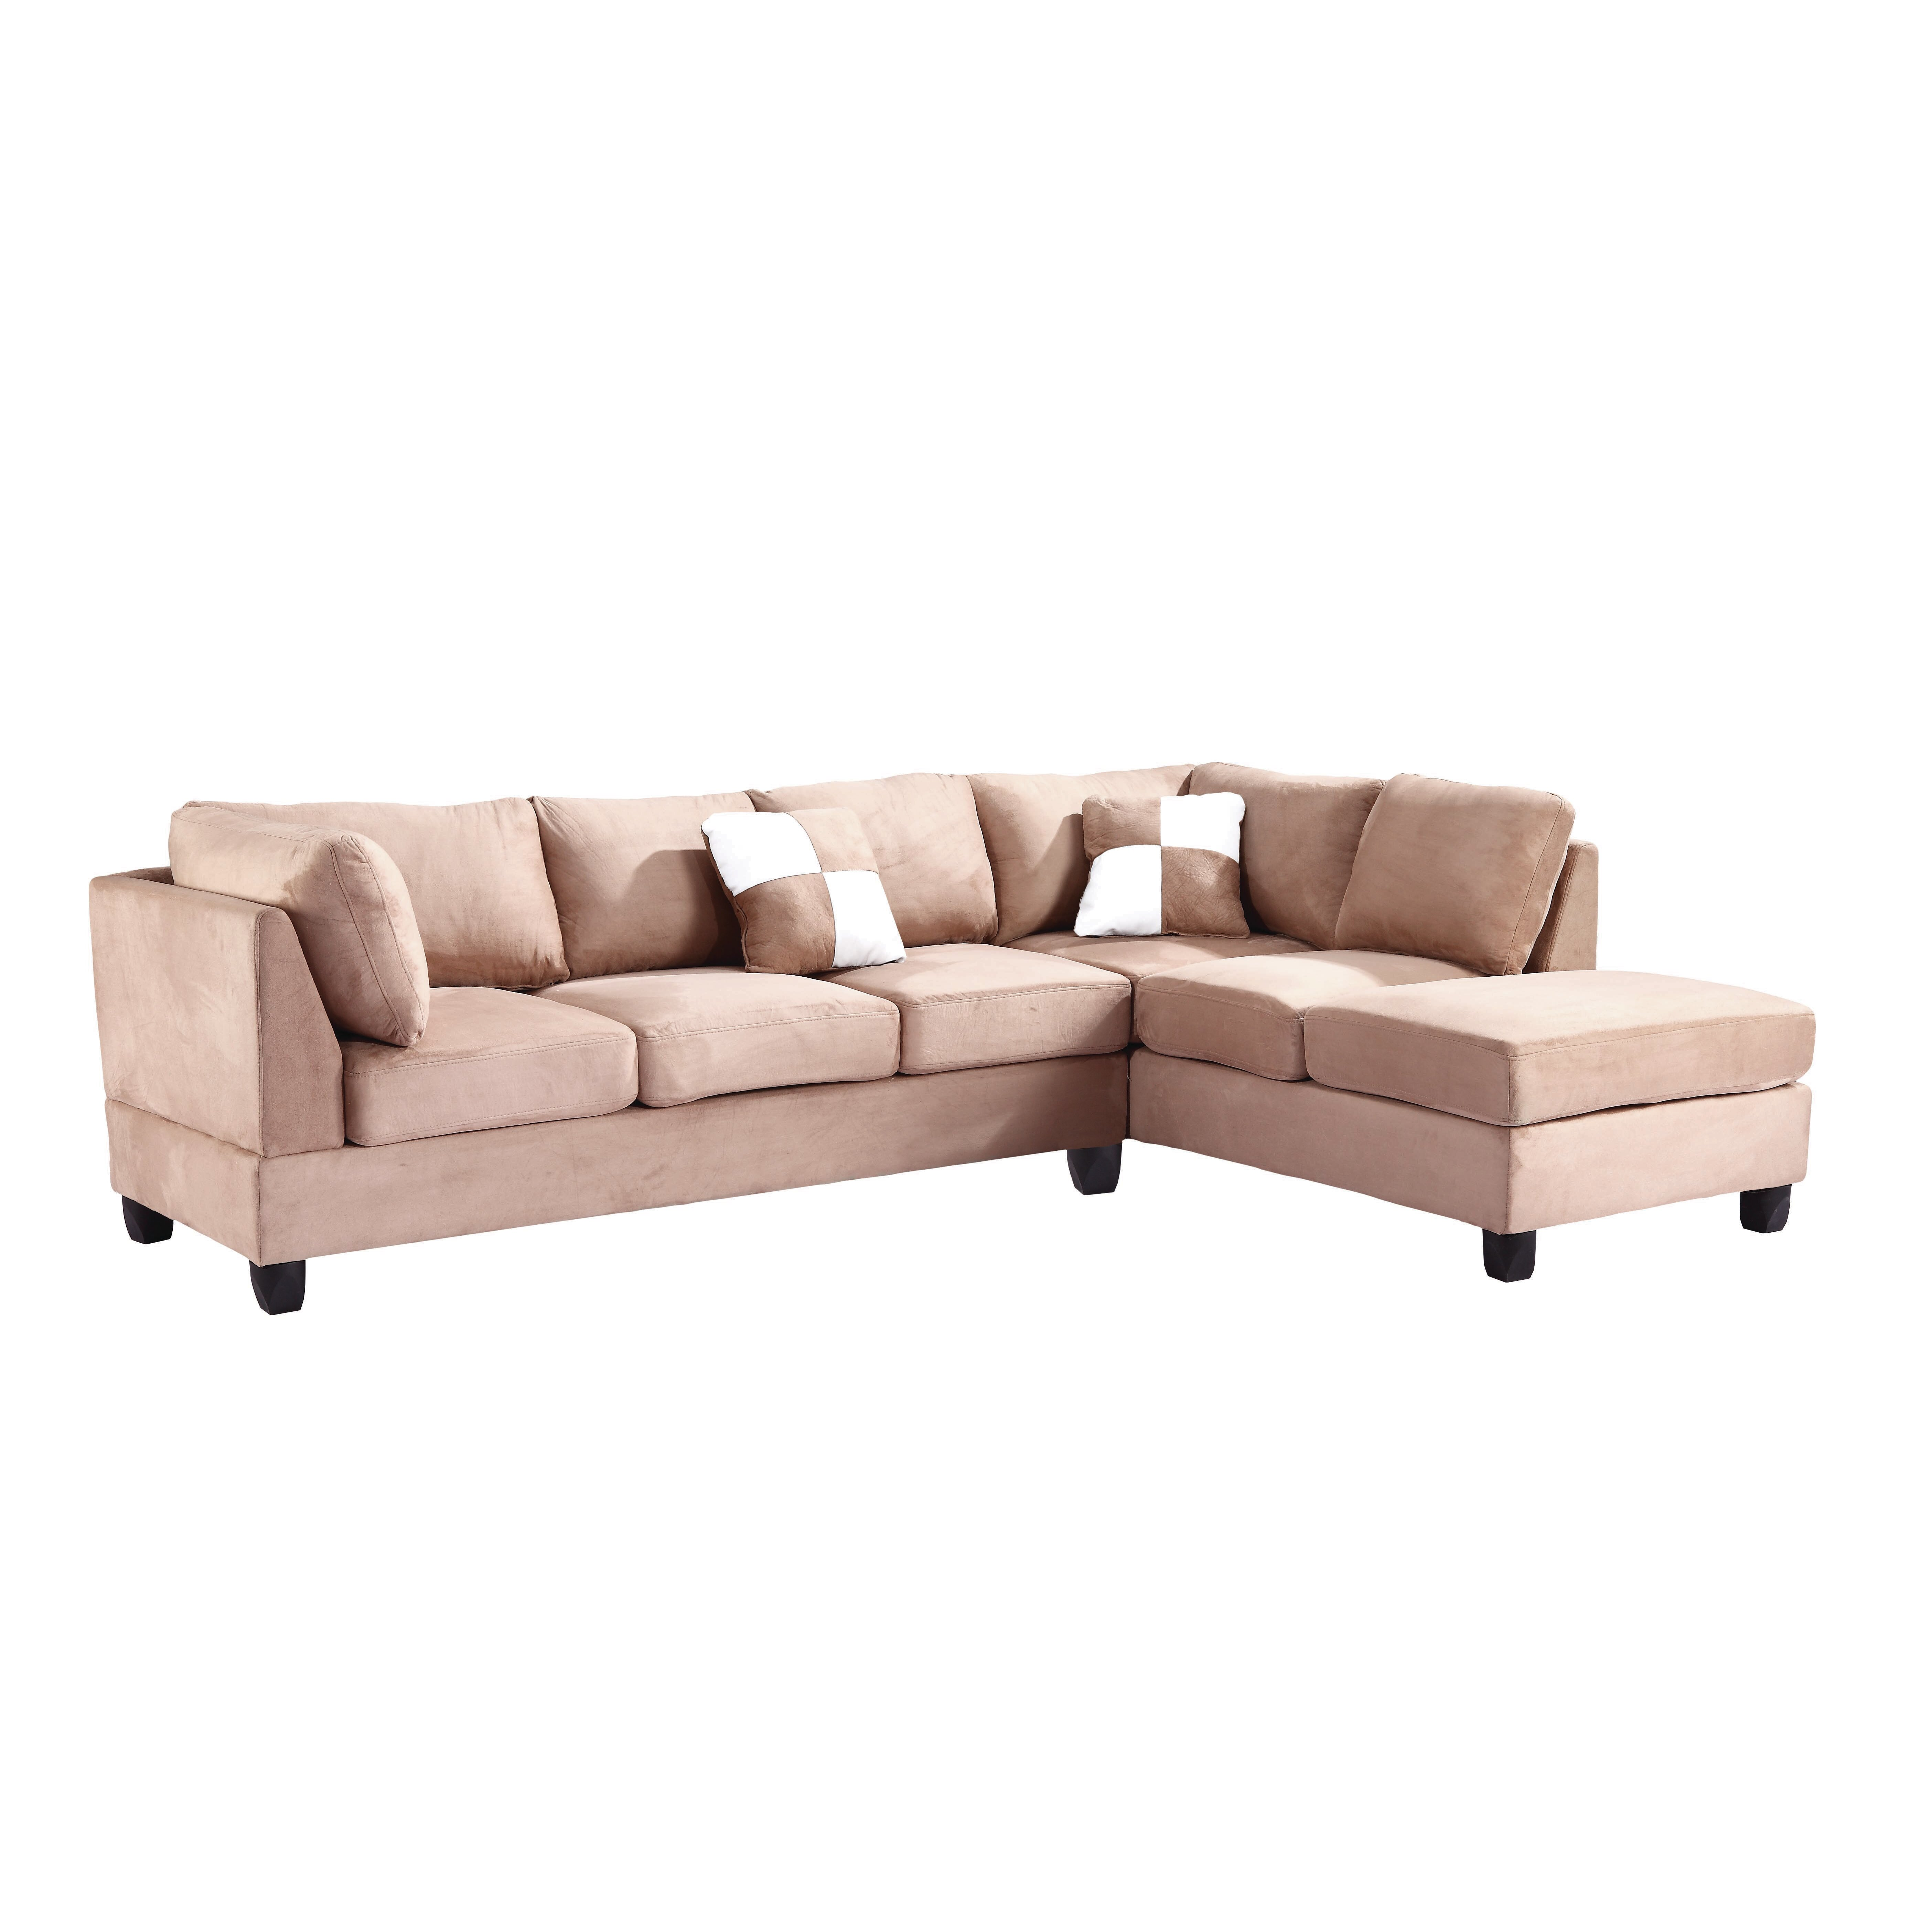 Glory furniture athens reversible sectional reviews for Wayfair sectionals